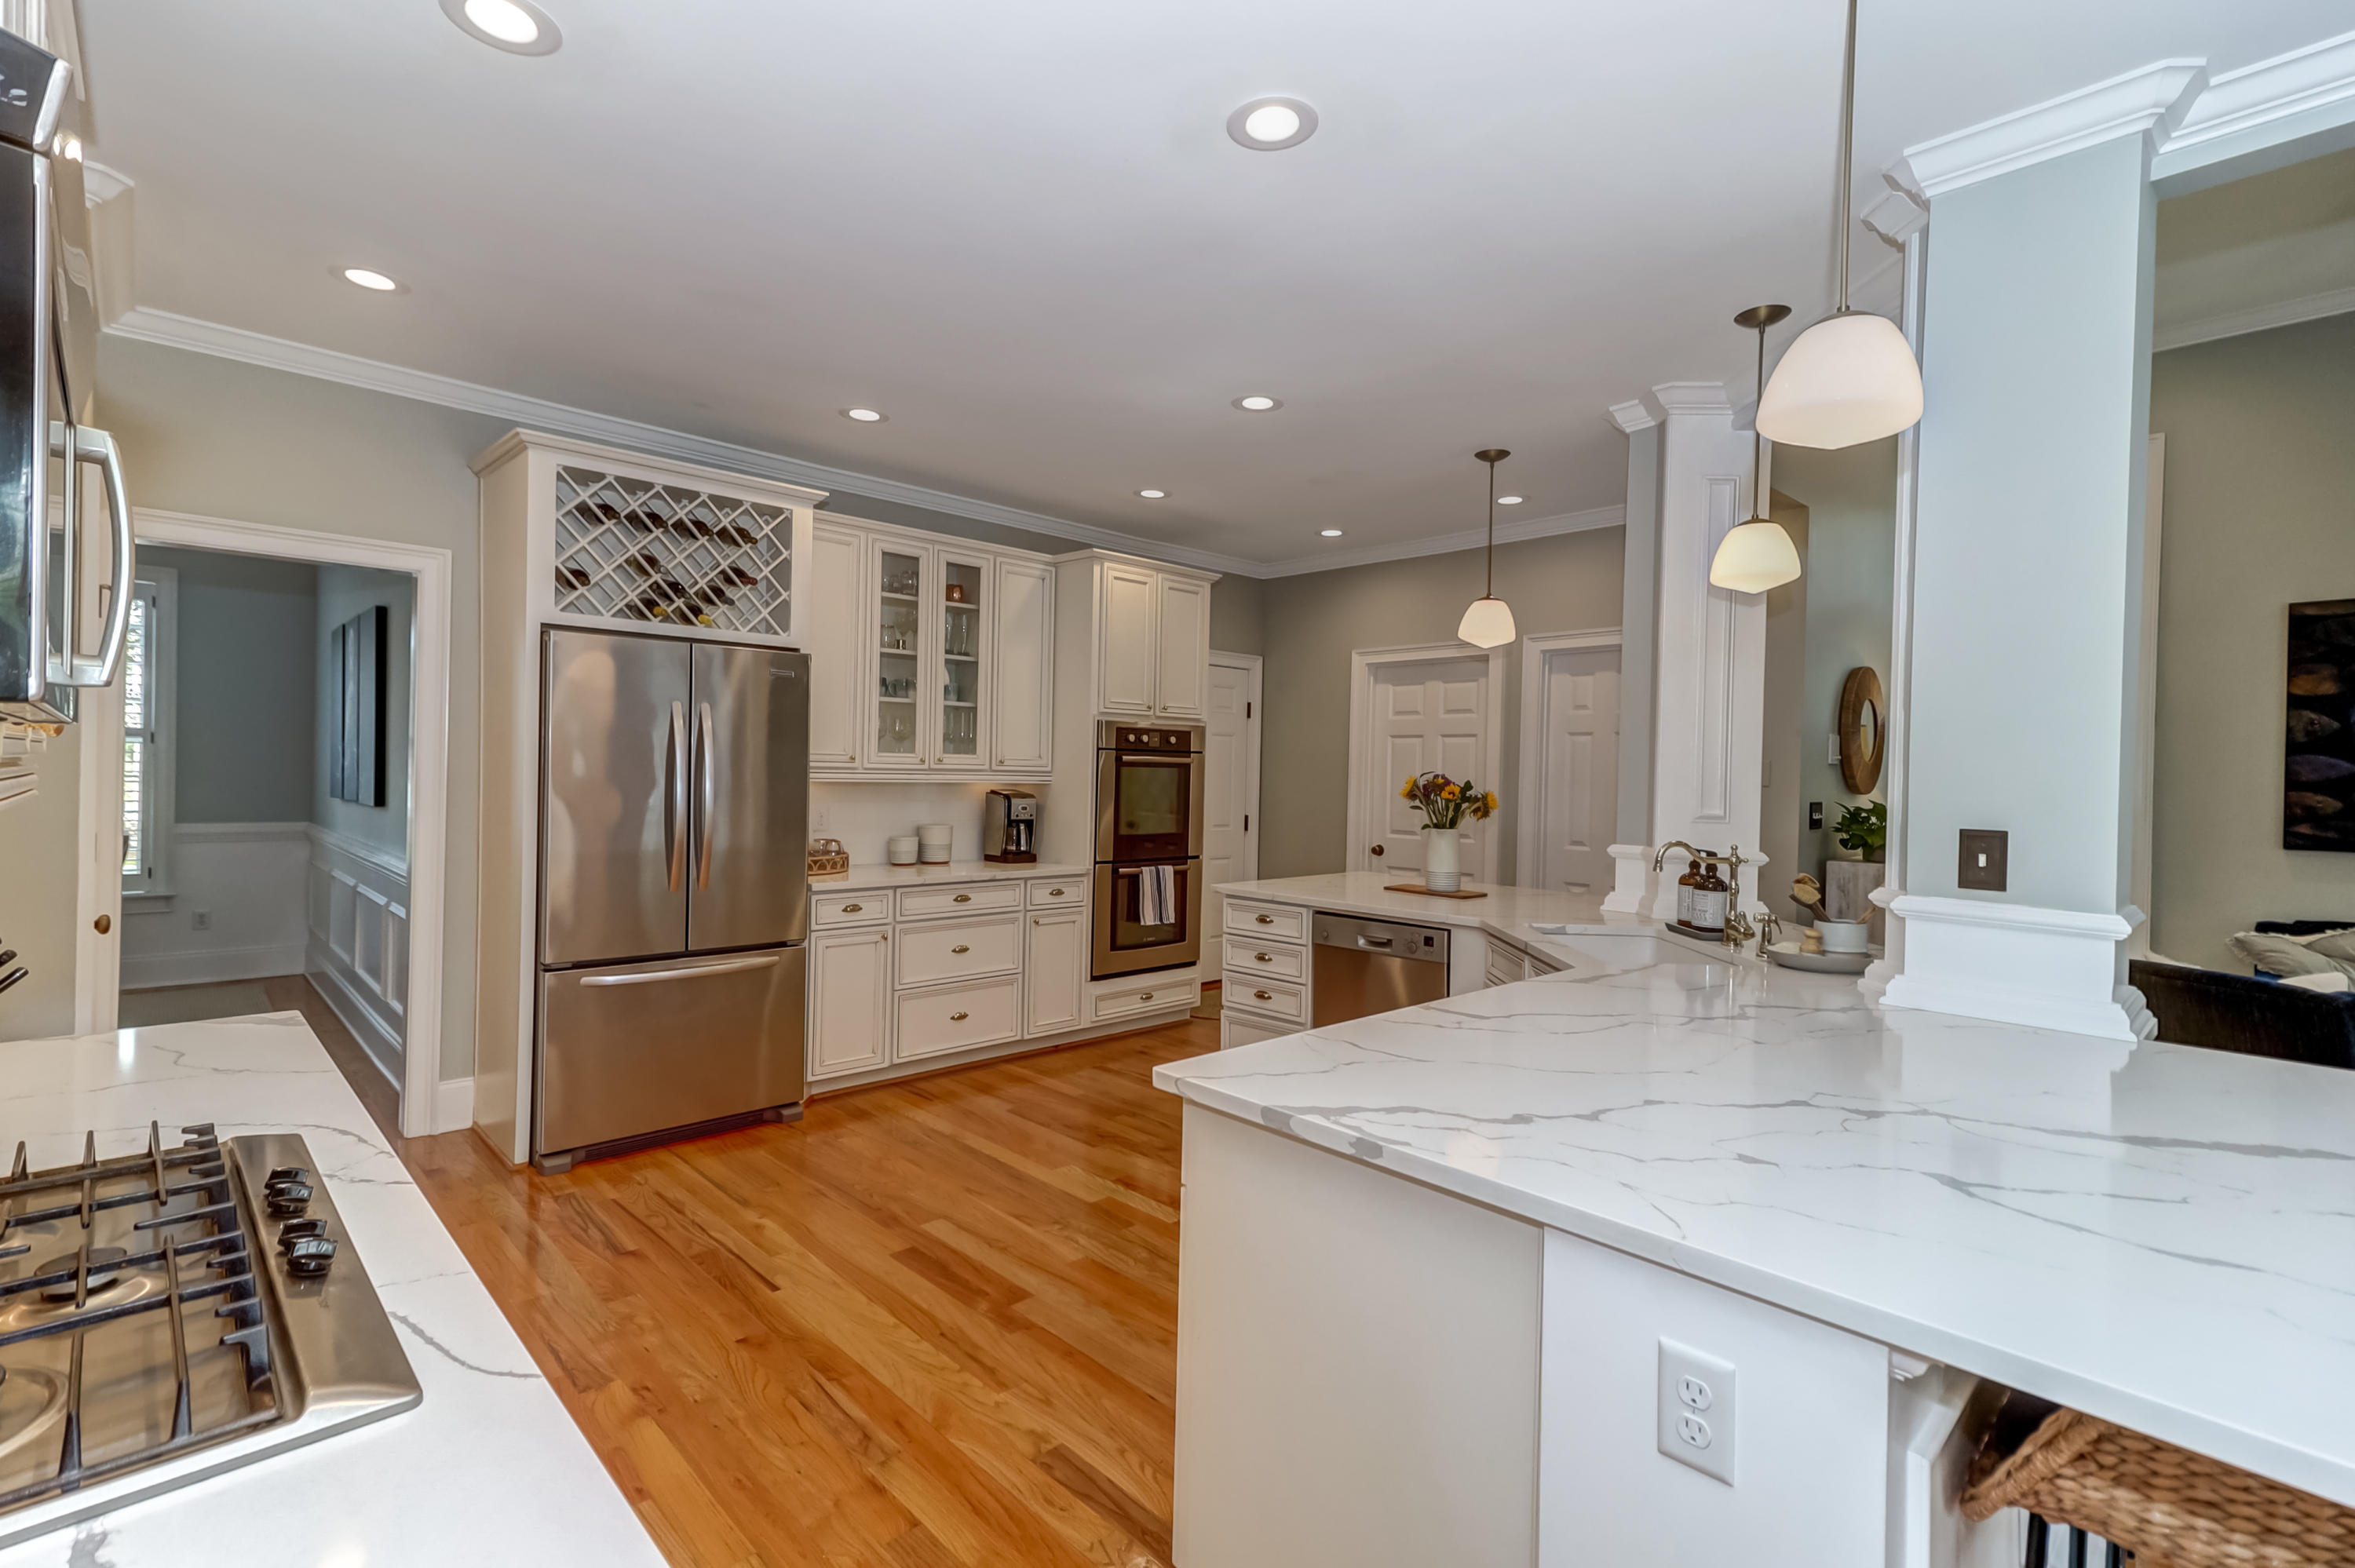 Woodward Pointe Homes For Sale - 657 White Chapel, Charleston, SC - 33